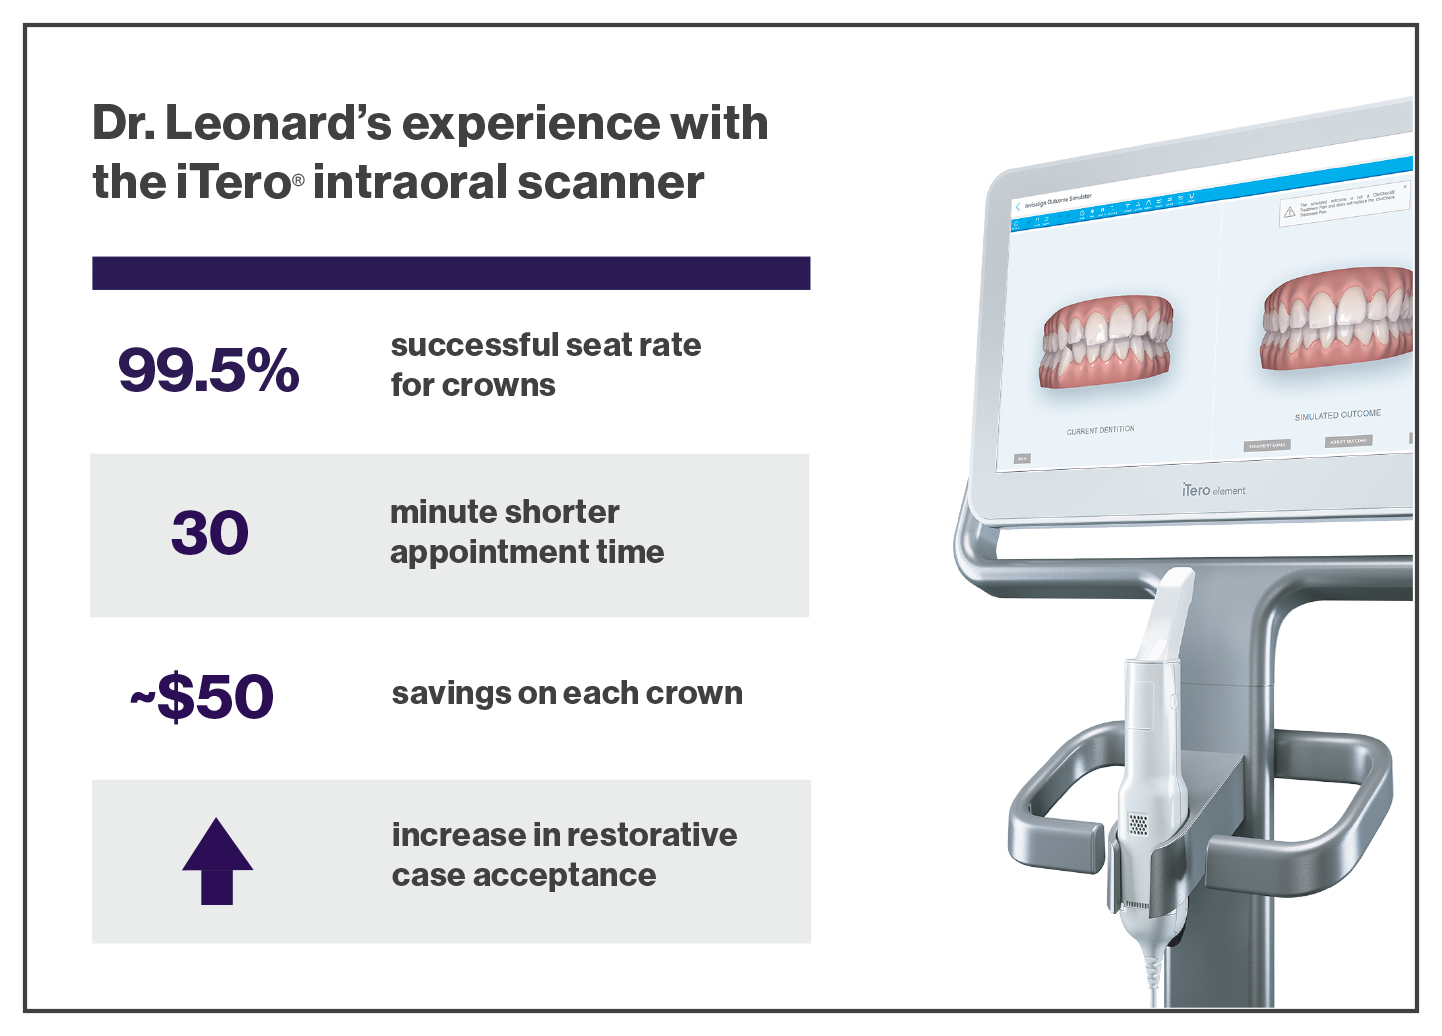 Utilizing the iTero Element intraoral scanner across the entire practice